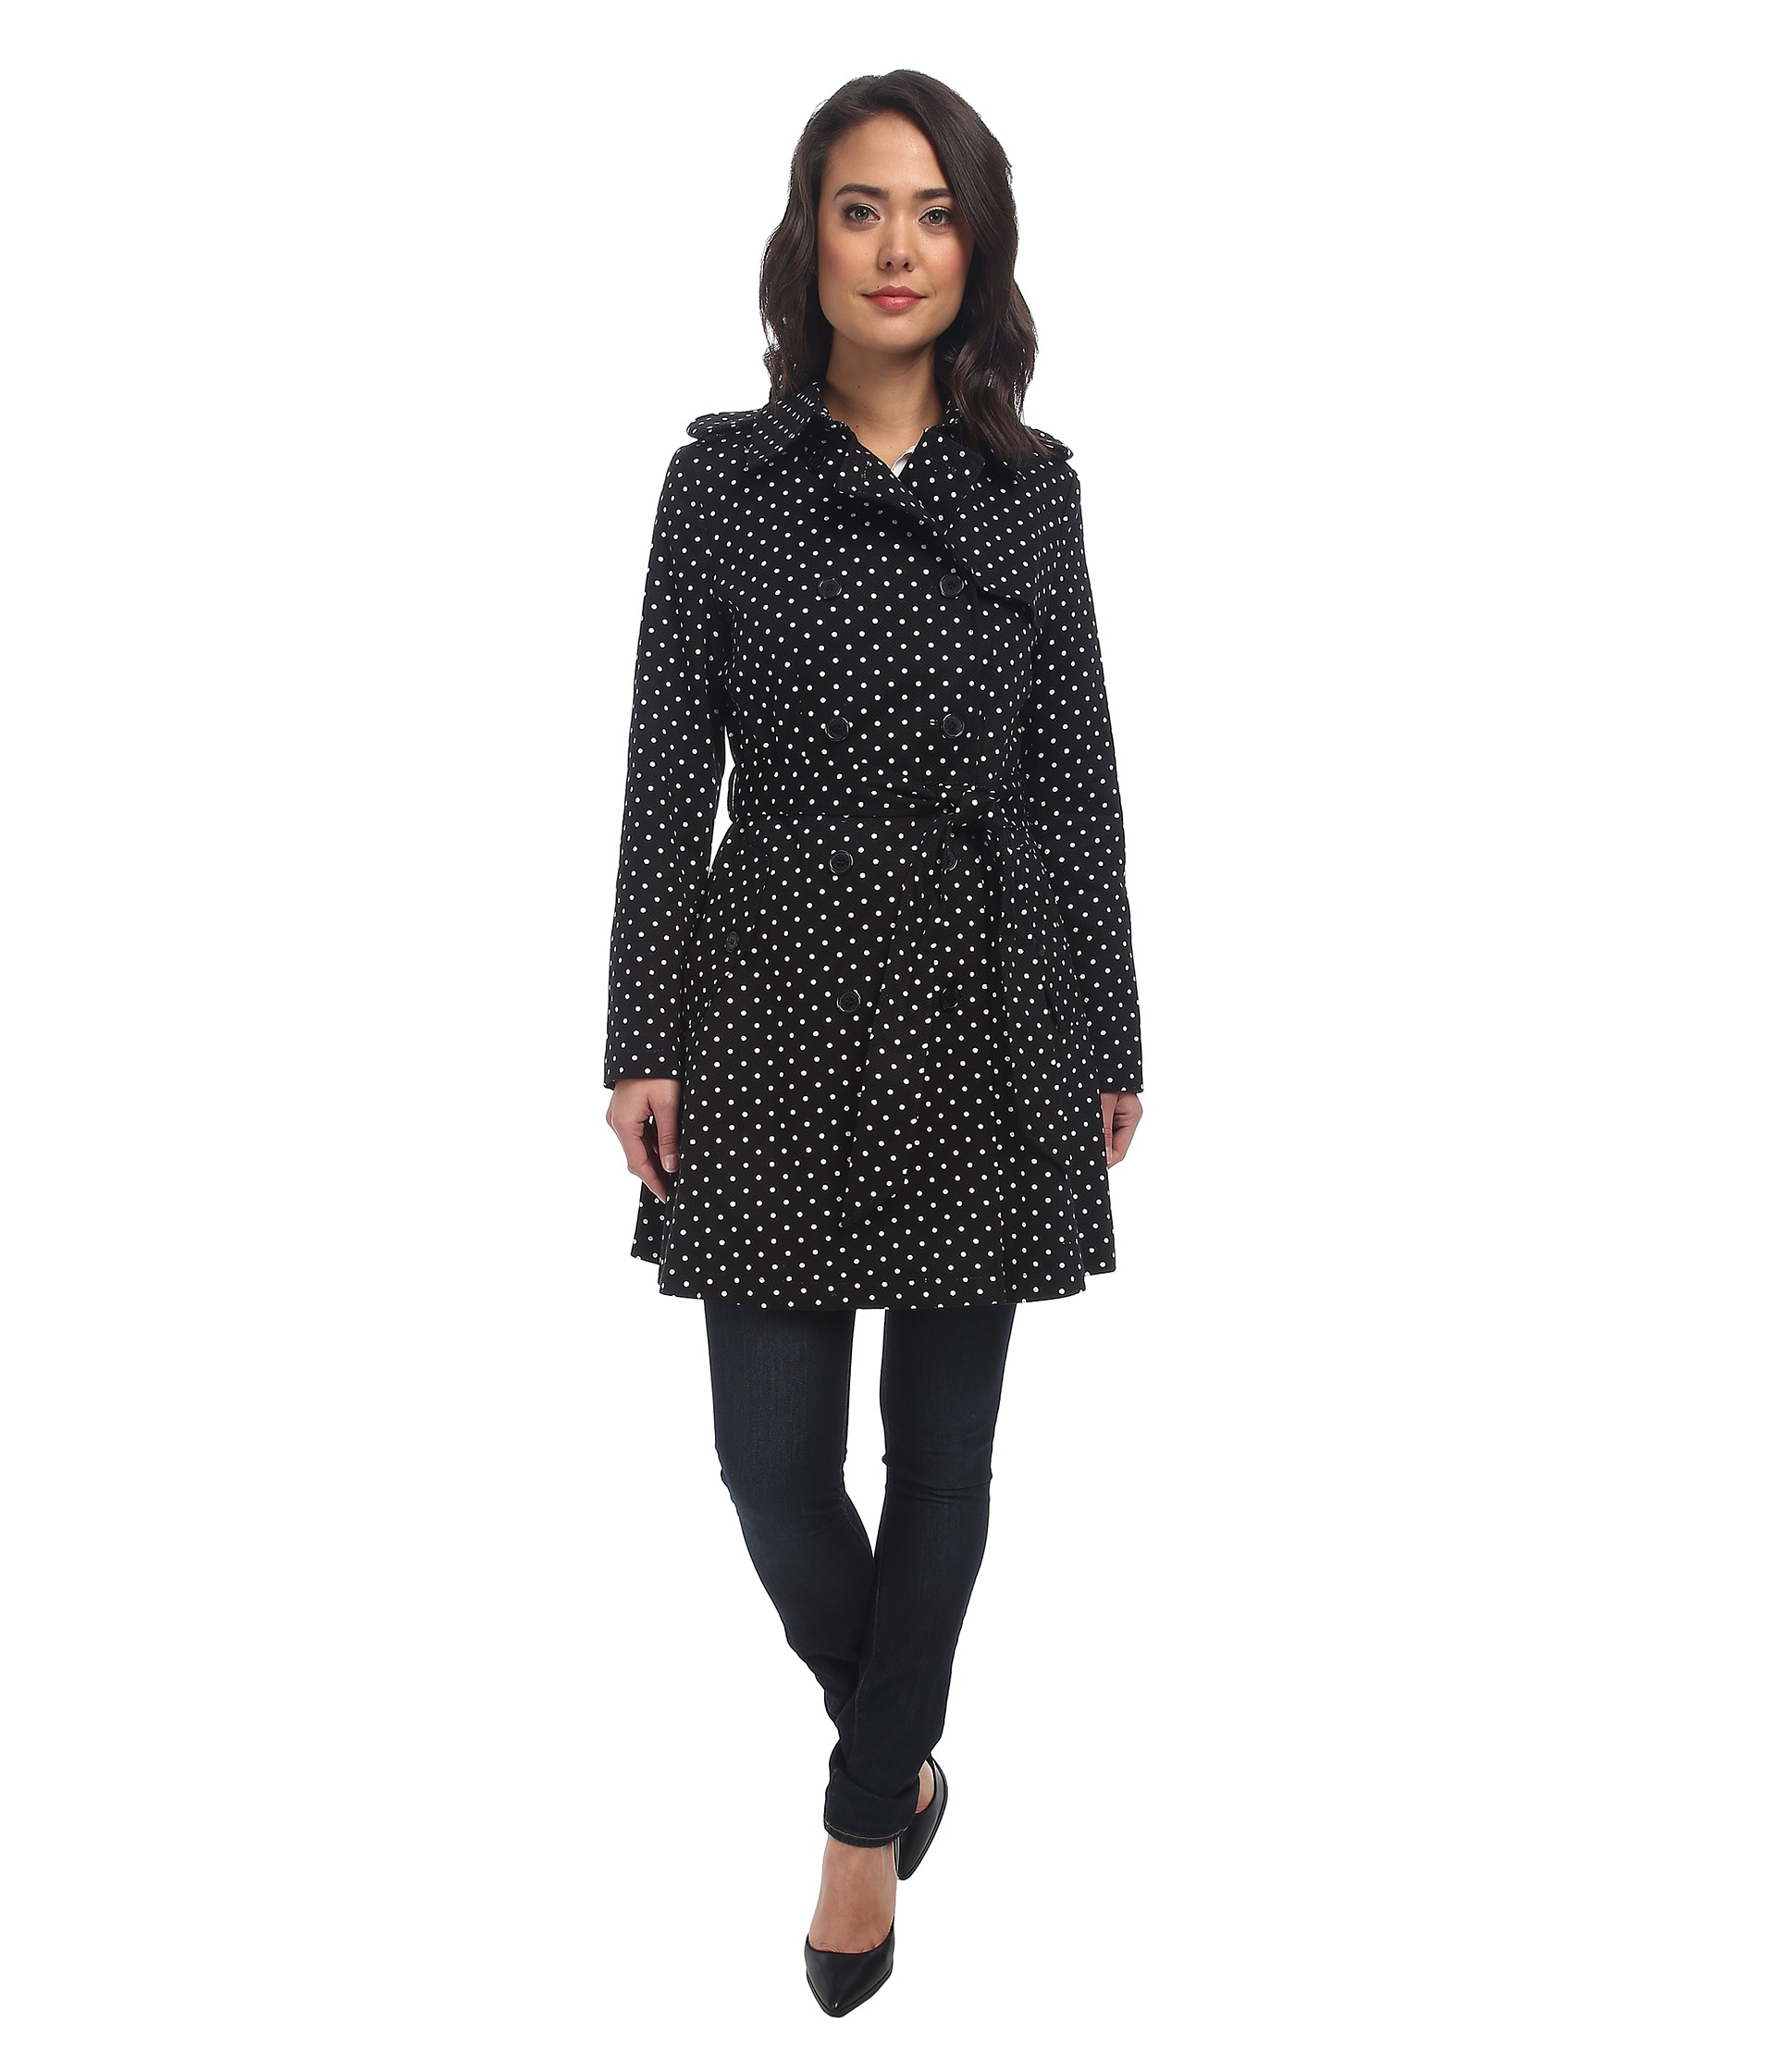 Find a great selection of raincoats for women at makeshop-zpnxx1b0.cf Shop by feature, length, and closure from brands like The North Face, Cole Haan, Pendleton & more. Check out our entire collection. Free shipping & returns.